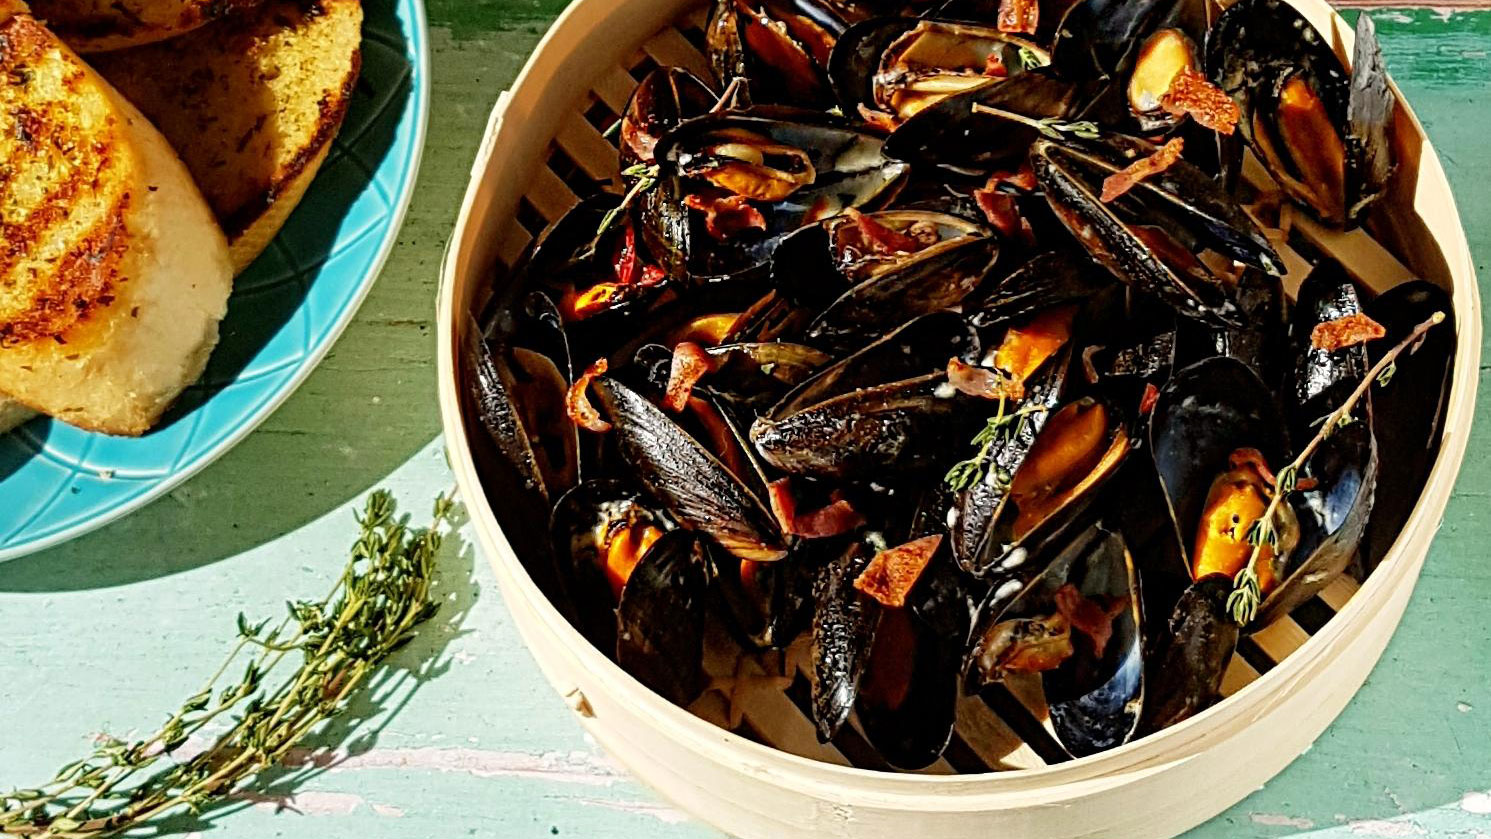 Lancashire Ale Steamed Mussels served in a wooden basket